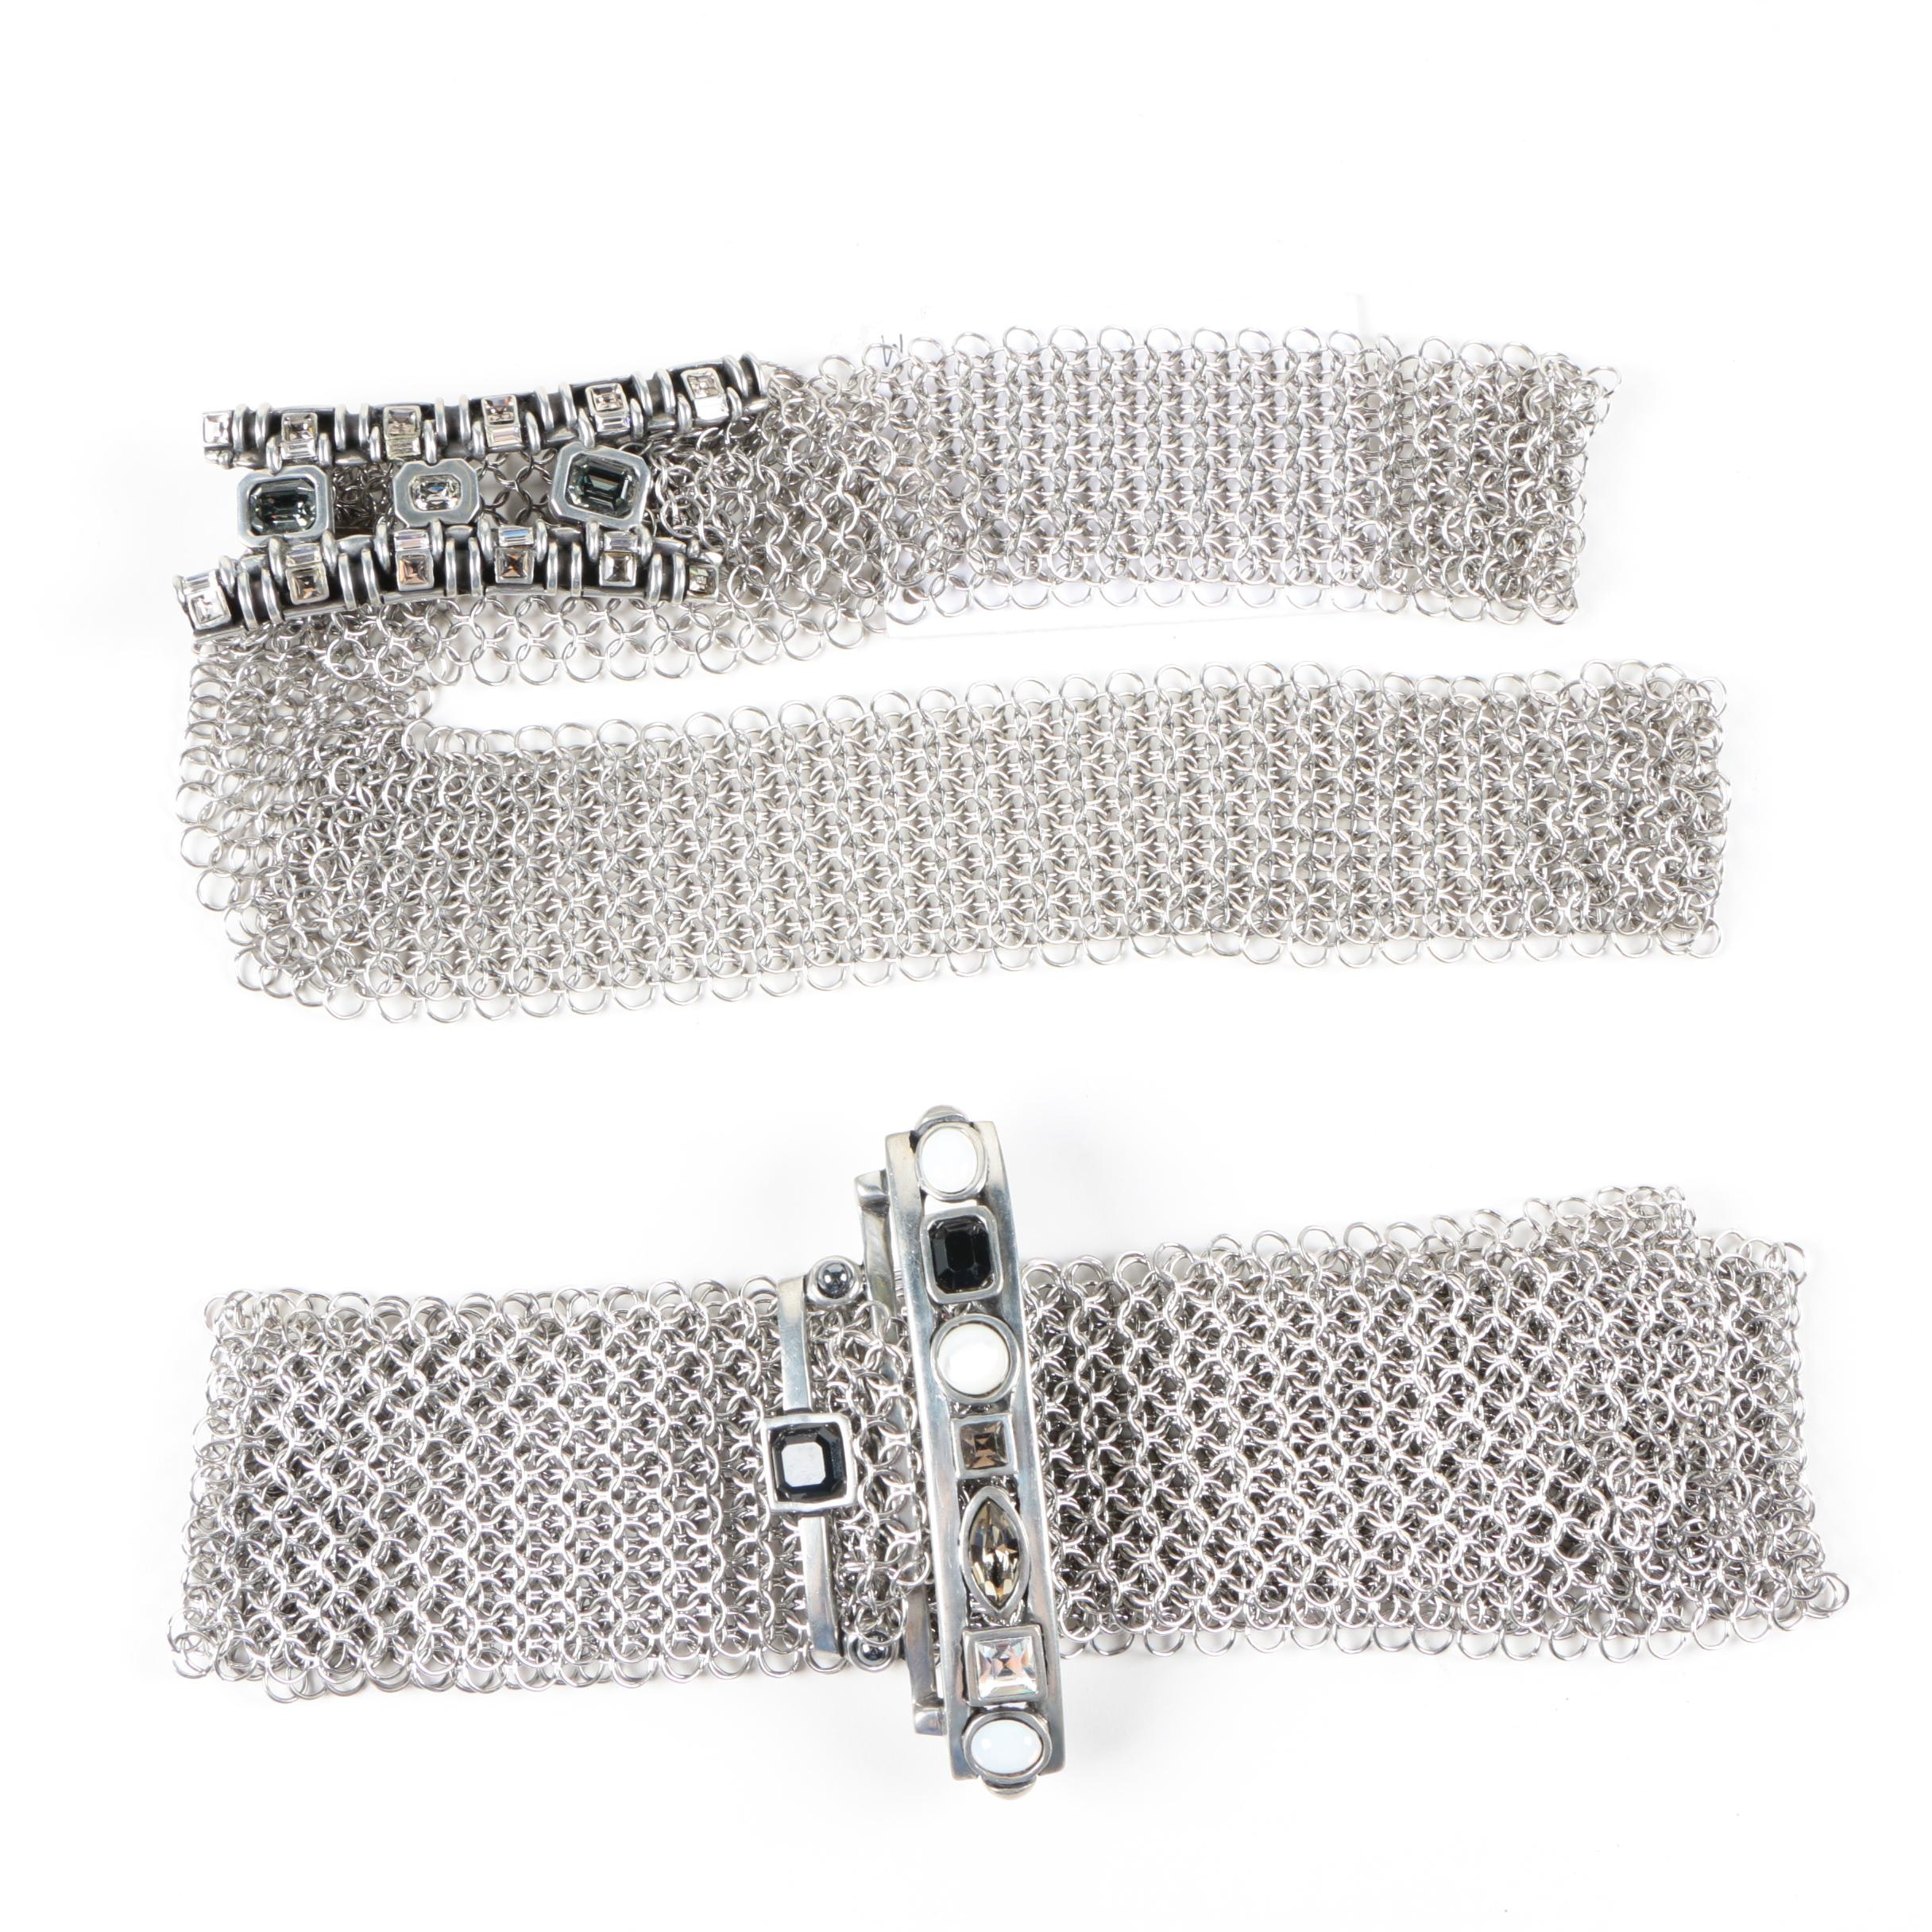 Fahrenheit Connie-Bates New York Chainmail and Crystal Belts